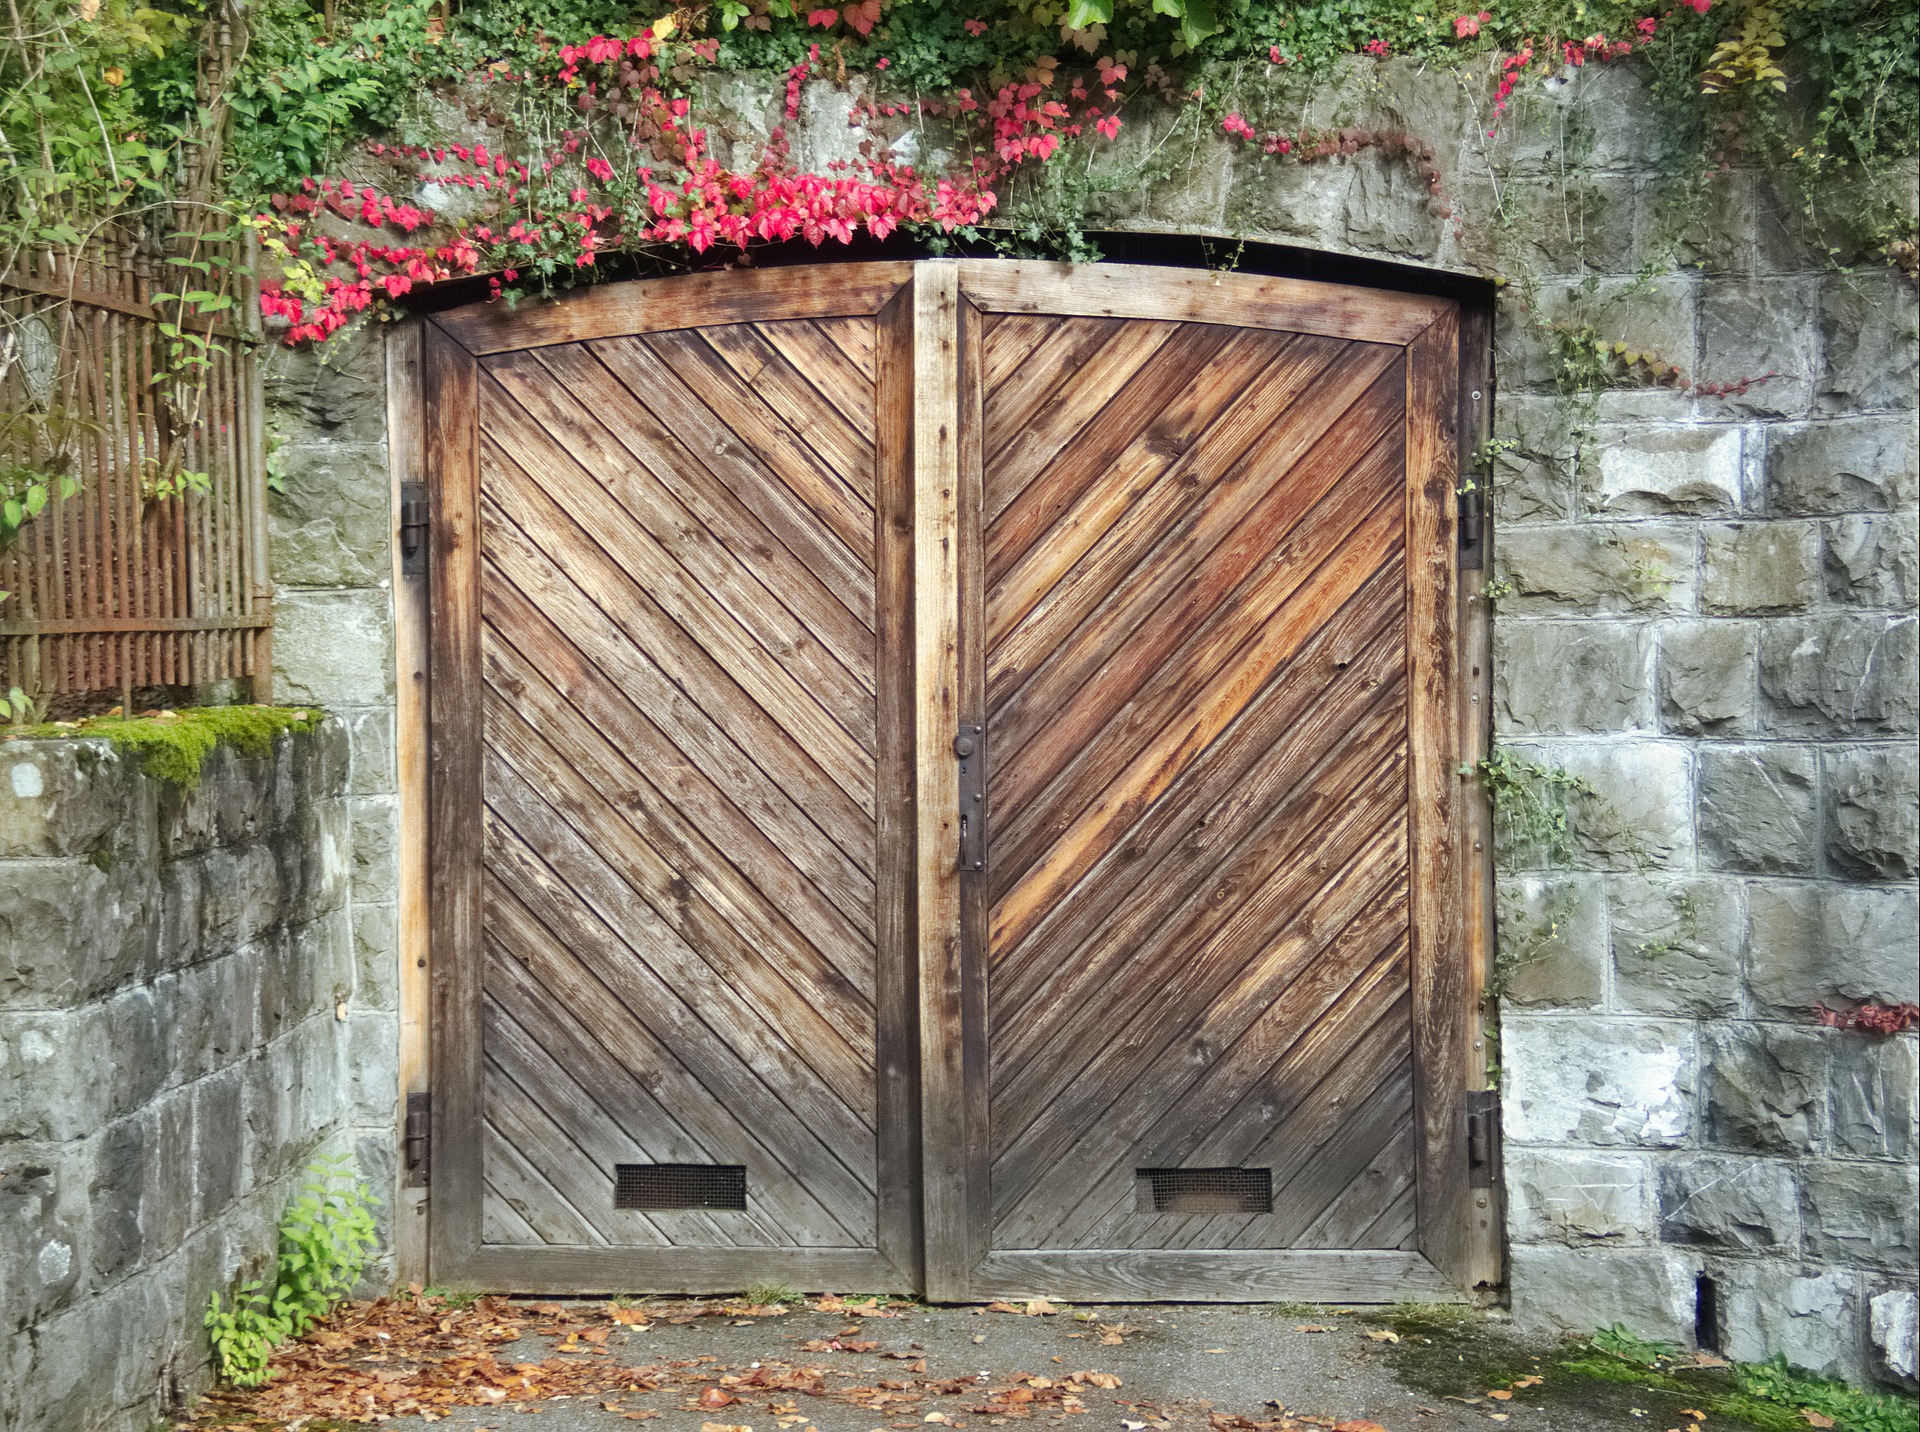 Wooden Garage Doors in Pasadena California